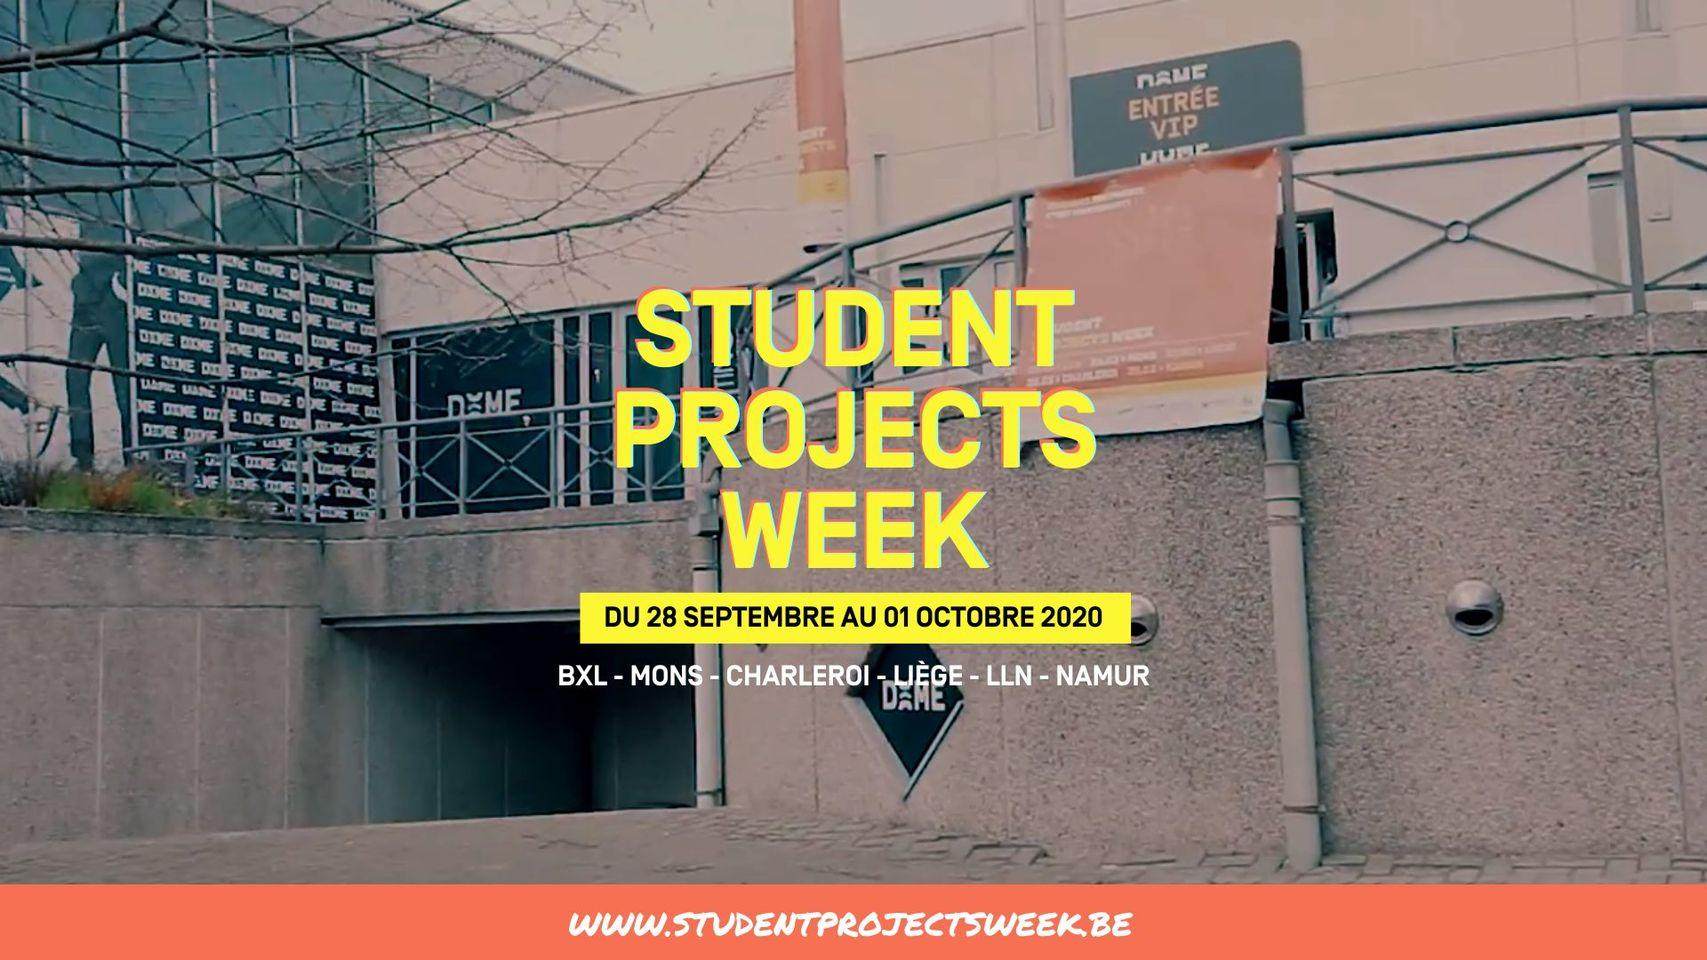 Student Projects Week 2020